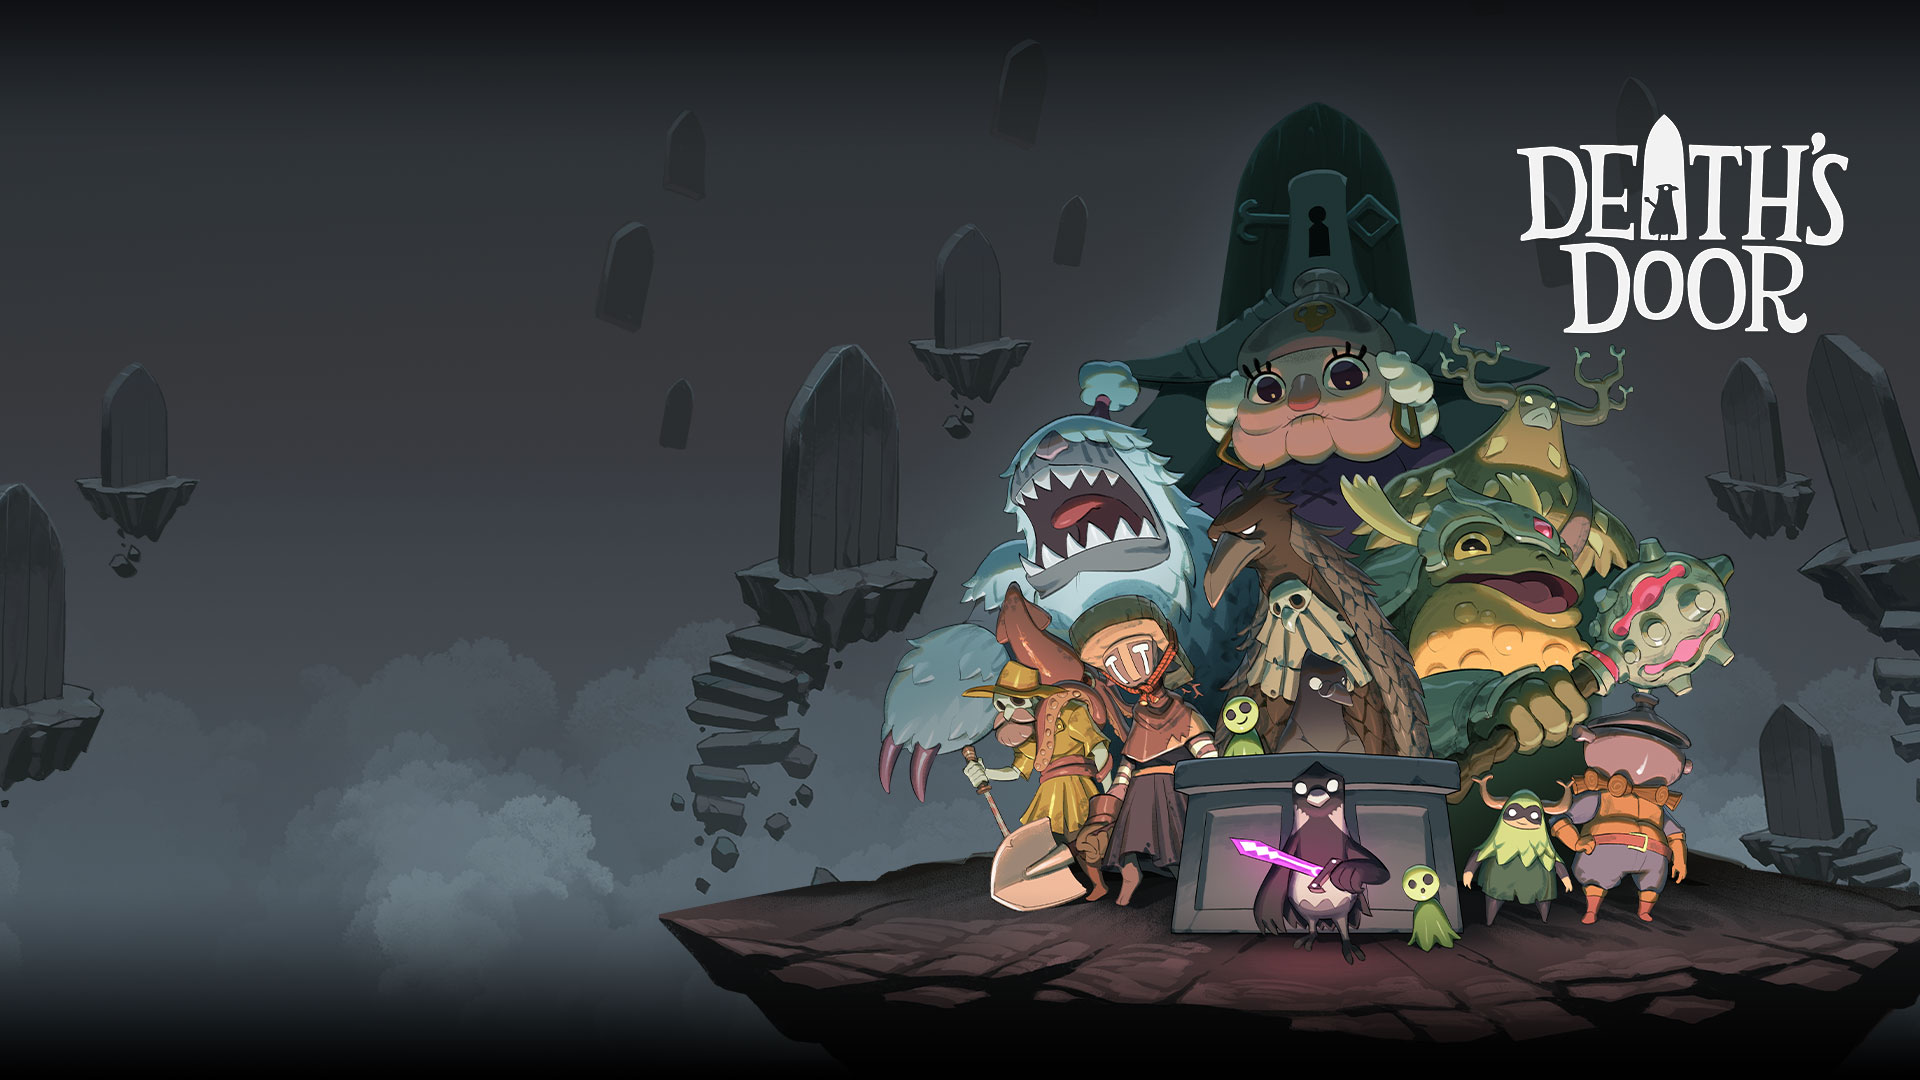 Death's Door, characters from Death's Door posing on a platform with floating tombstones around them